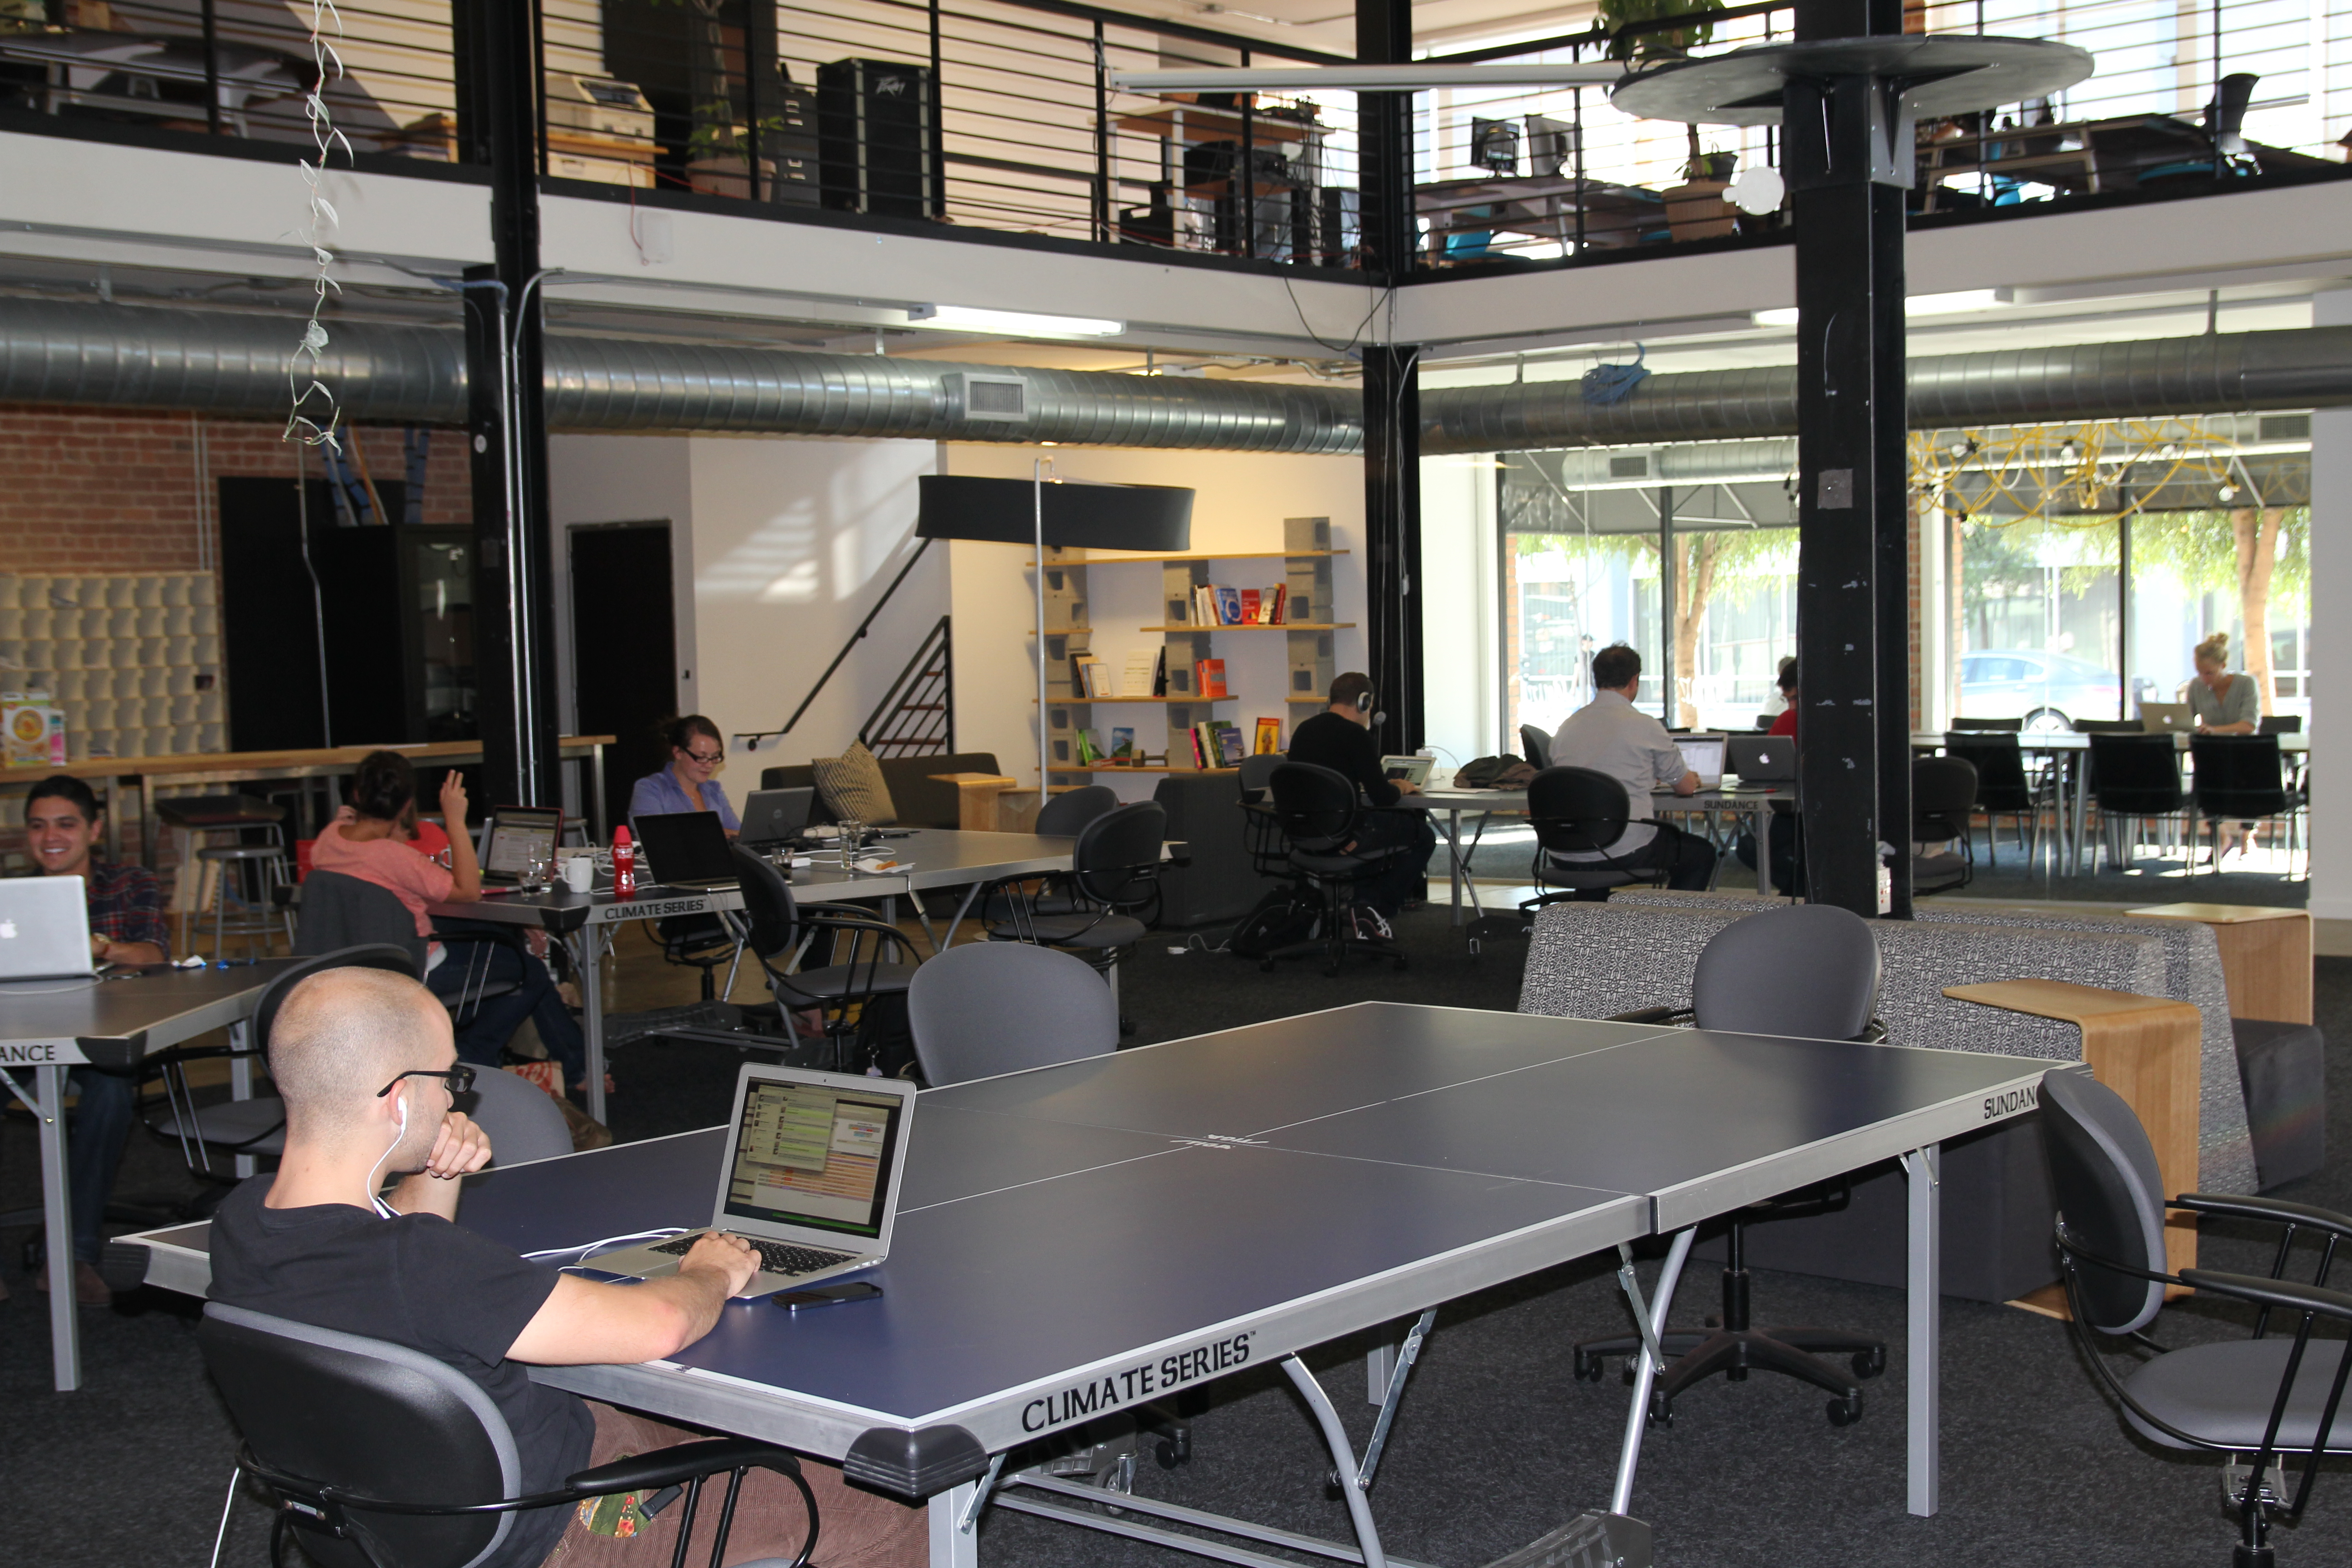 3 Reasons Why the Open Office Workspace Idea is Fizzling Out